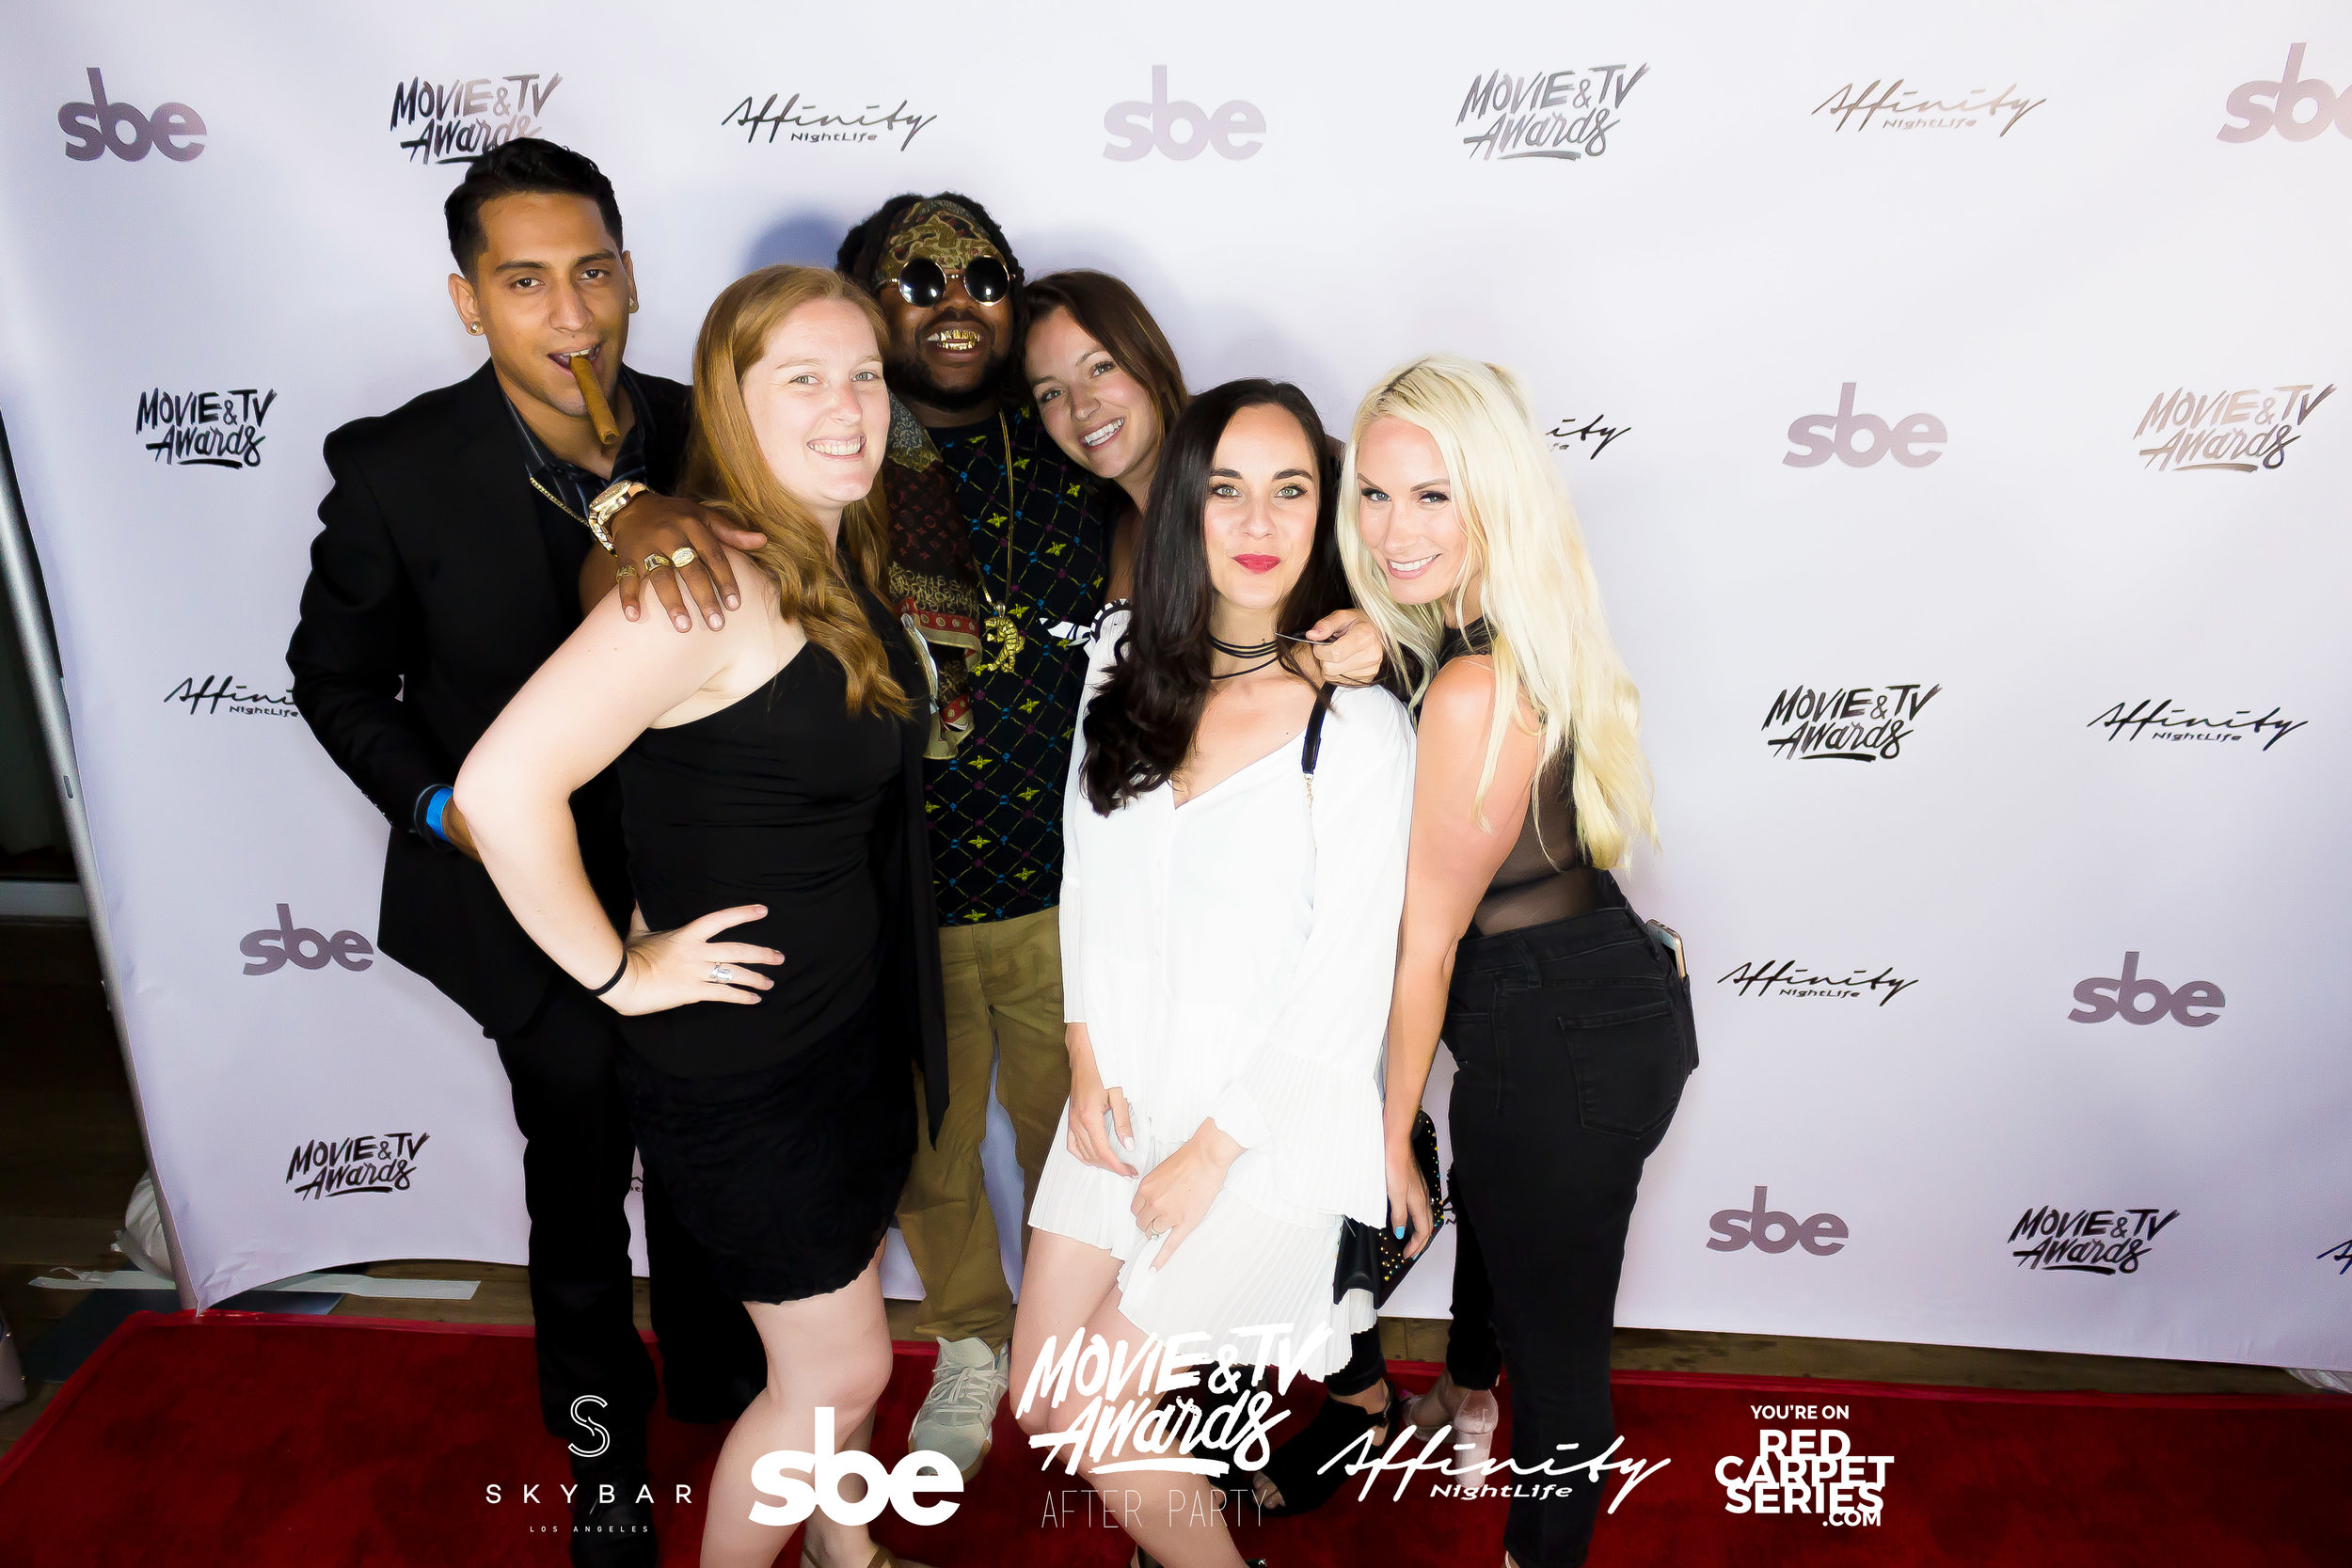 Affinity Nightlife MTV Movie & TV Awards After Party - Skybar at Mondrian - 06-15-19 - Vol. 2_131.jpg